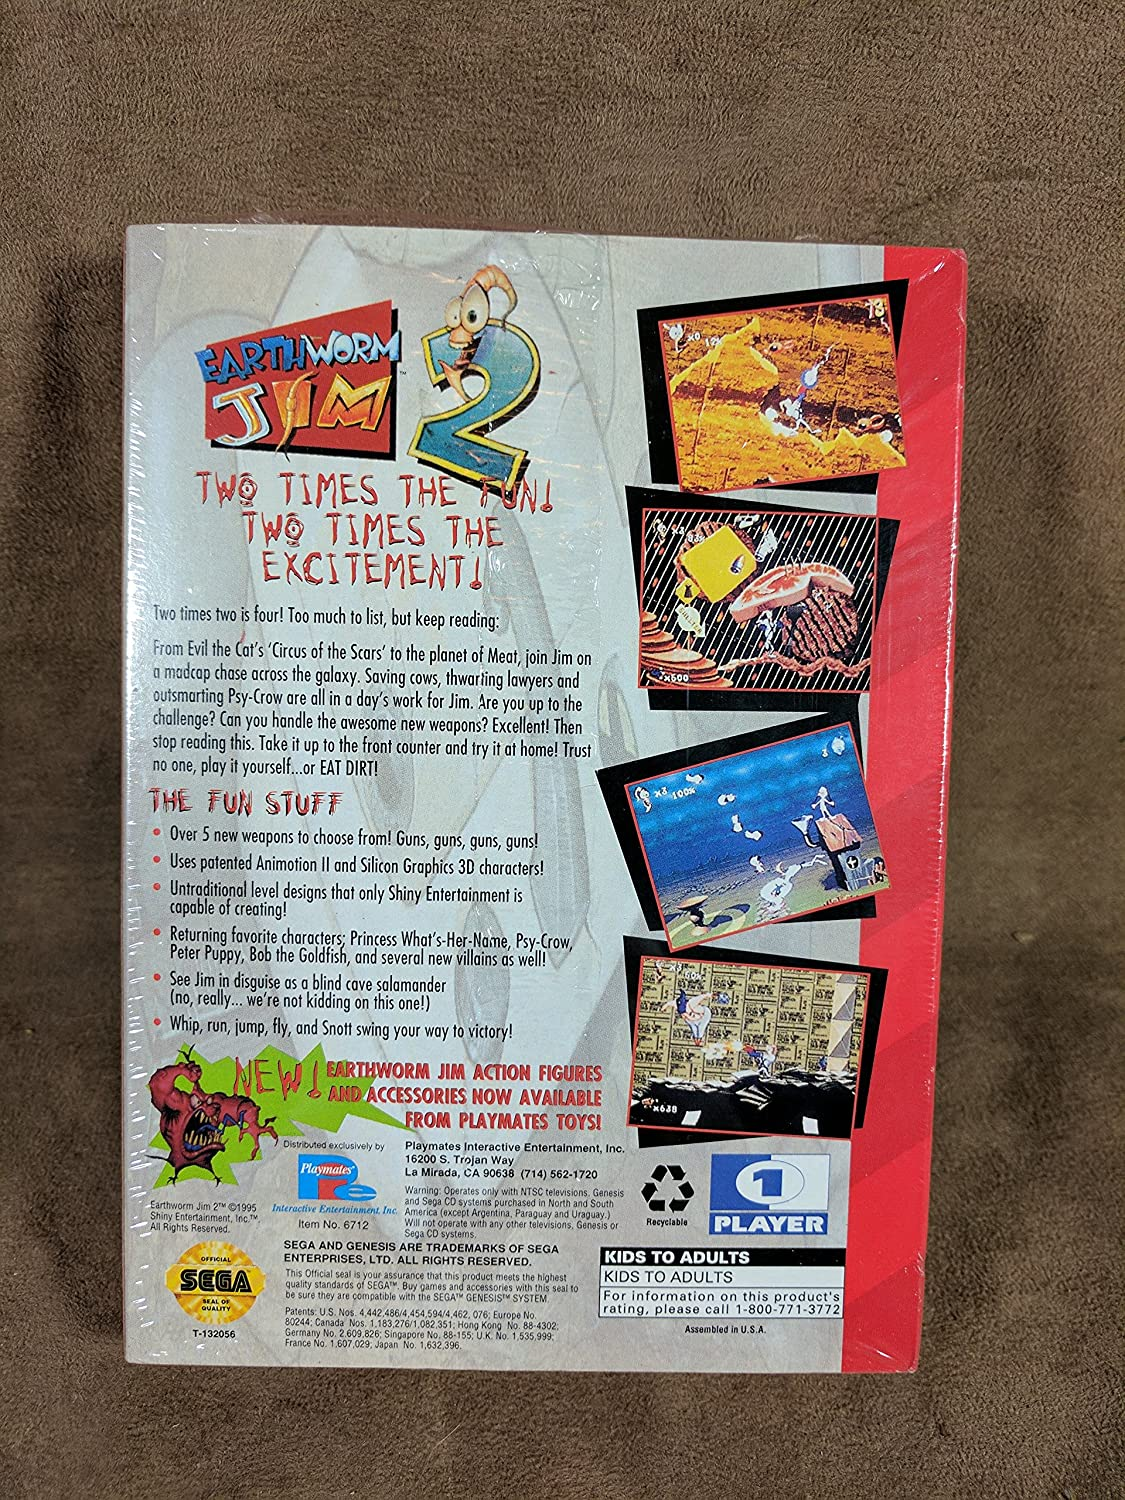 Arcade Gaming Arcade, Jukeboxes & Pinball 1995 Sega Sega Virtual On Video Flyer Mint To Be Distributed All Over The World